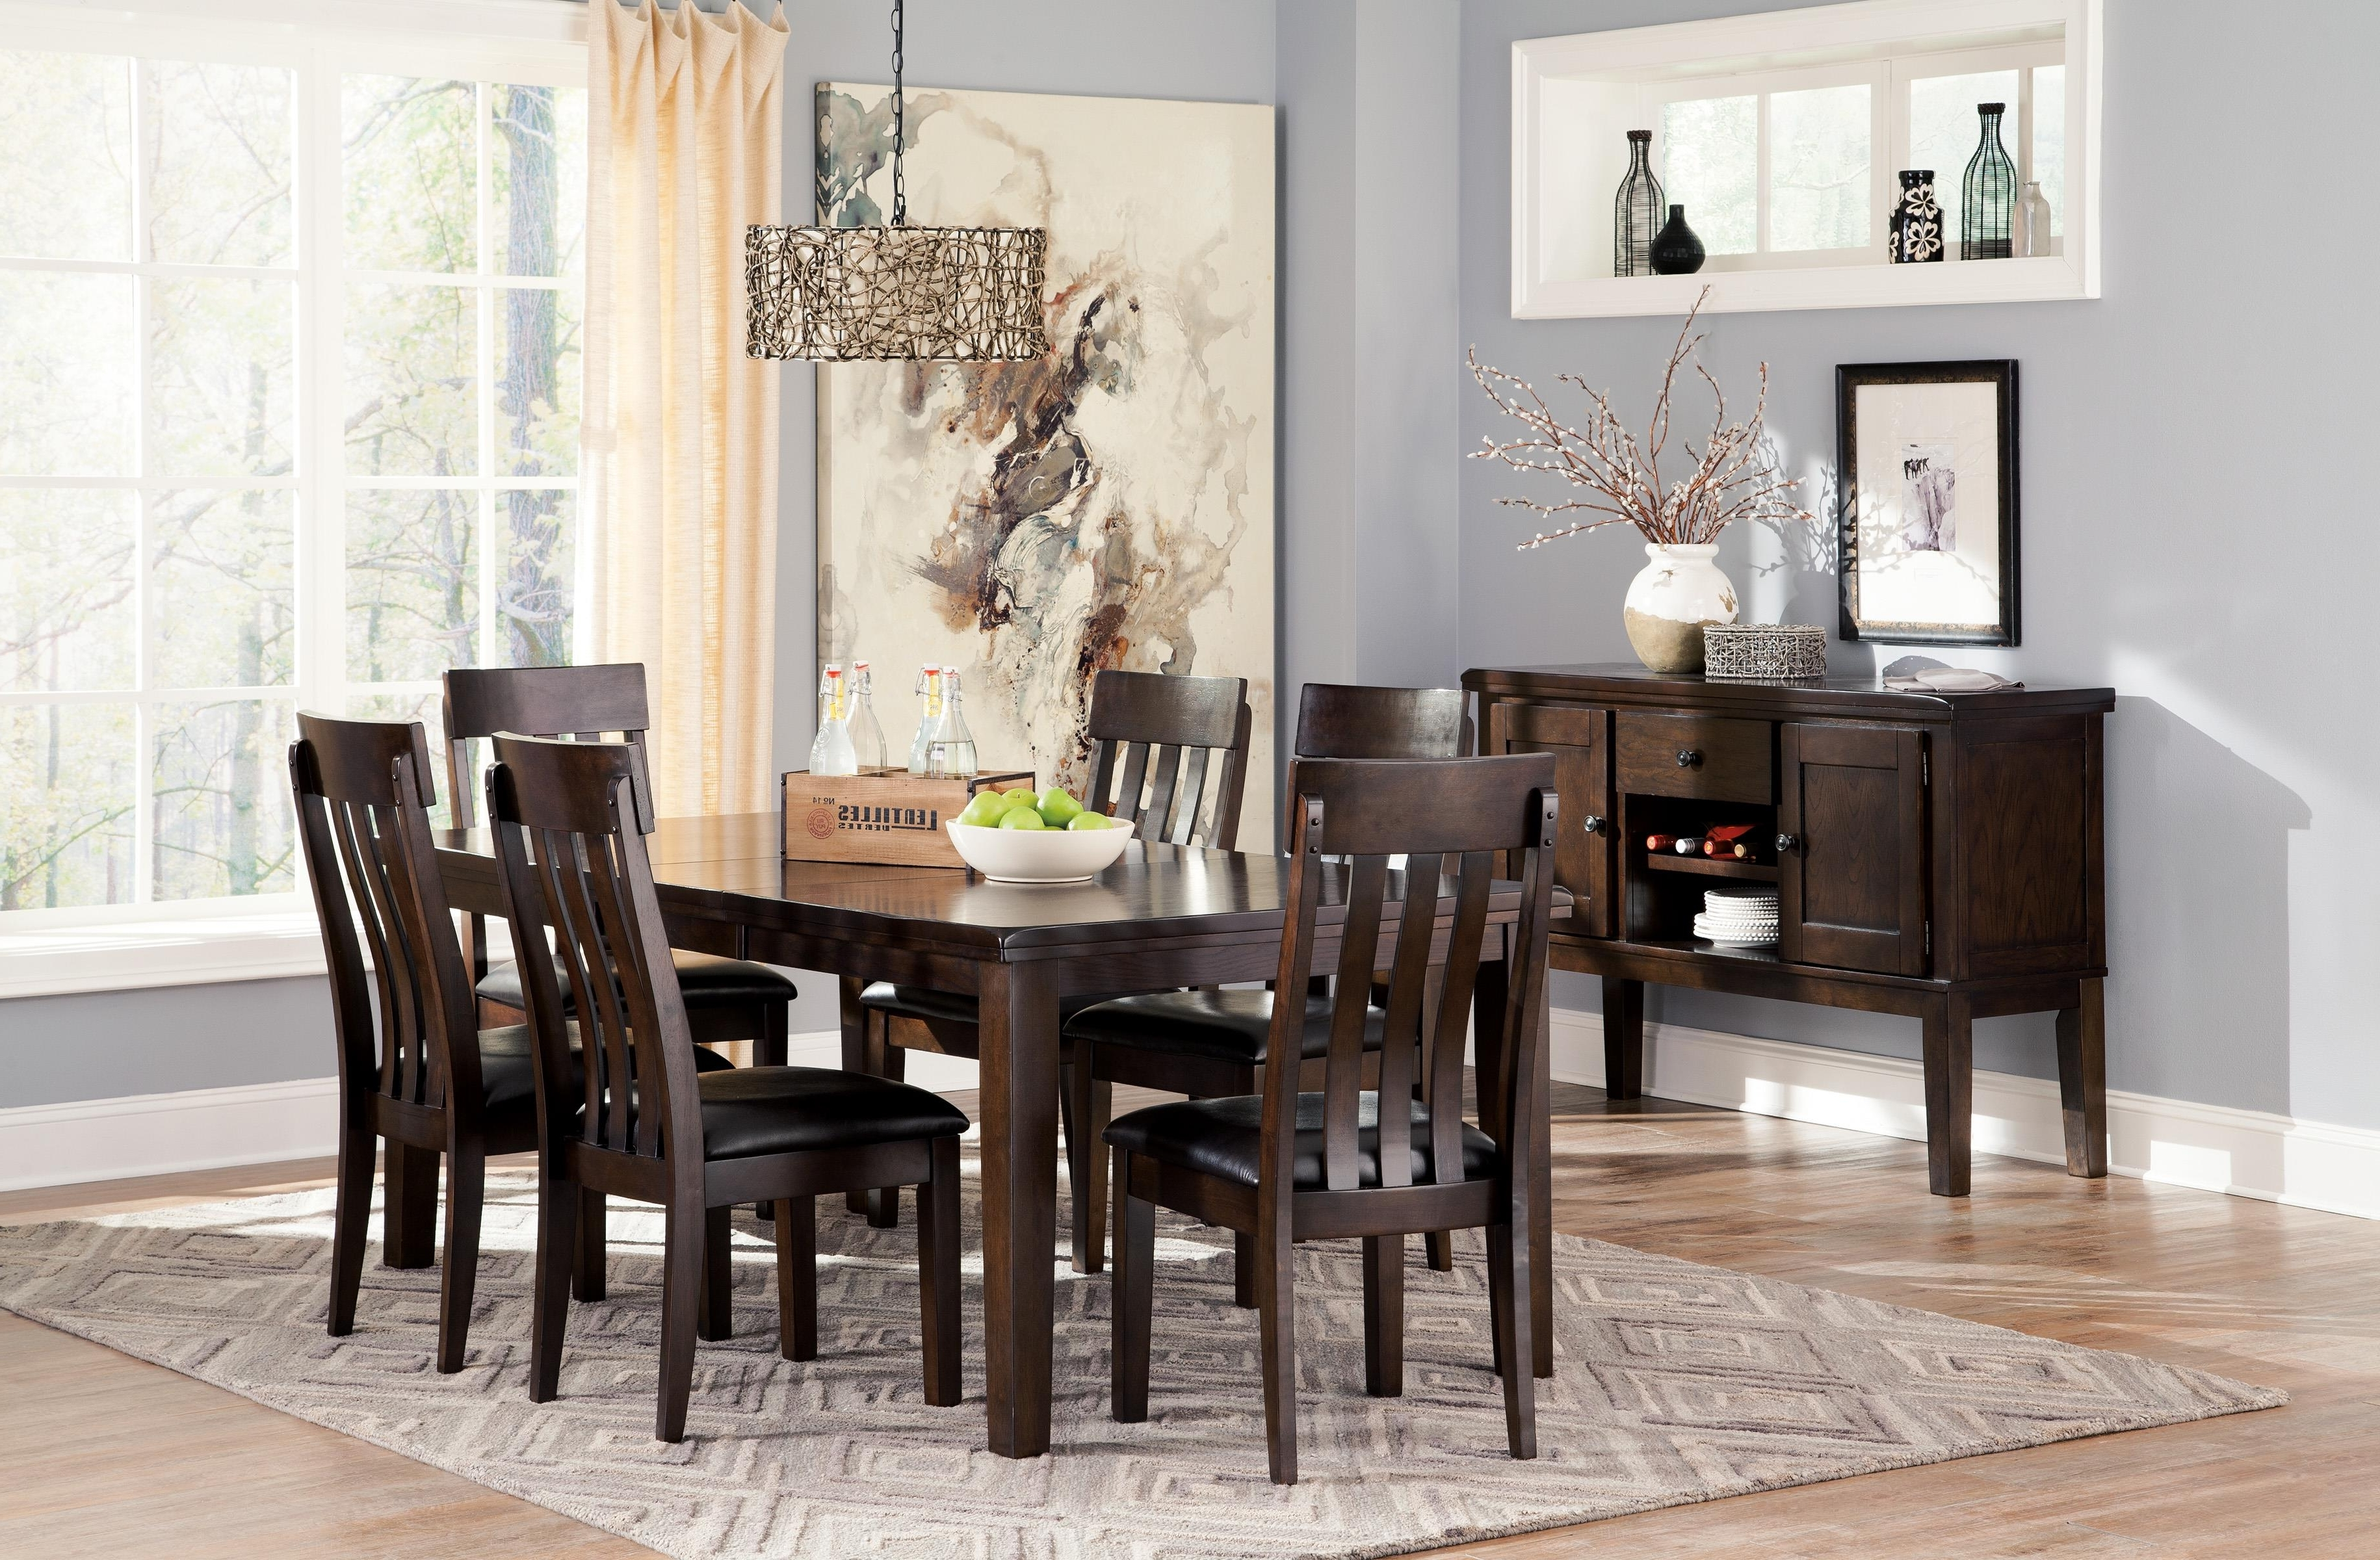 Signature Designashley Haddigan 6 Piece Rectangular Dining Room Throughout Widely Used Dark Dining Room Tables (View 20 of 25)